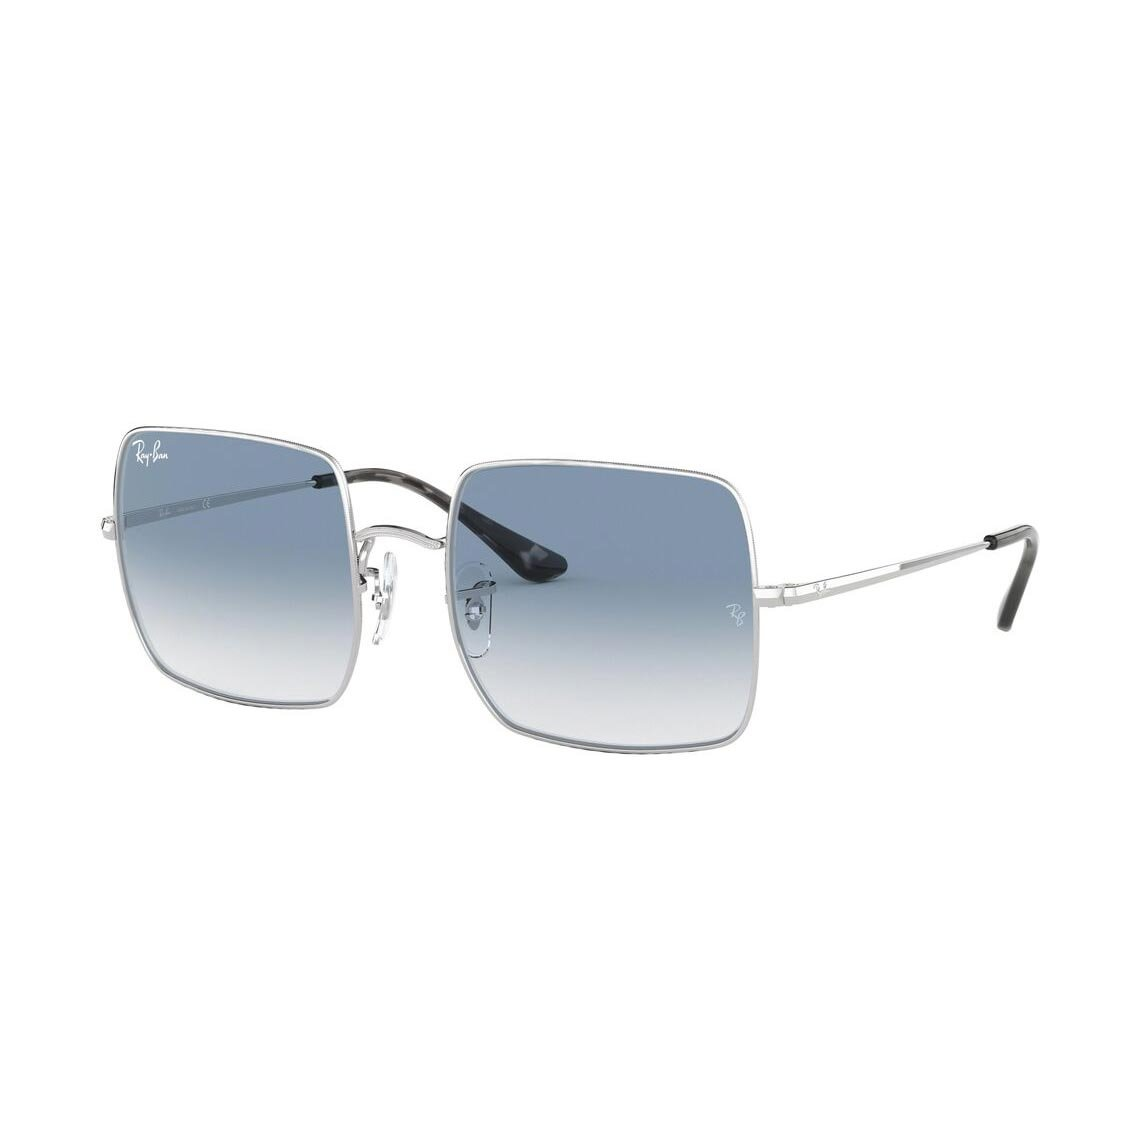 Ray-Ban Square 1971 Classic RB1971 91493F 5419